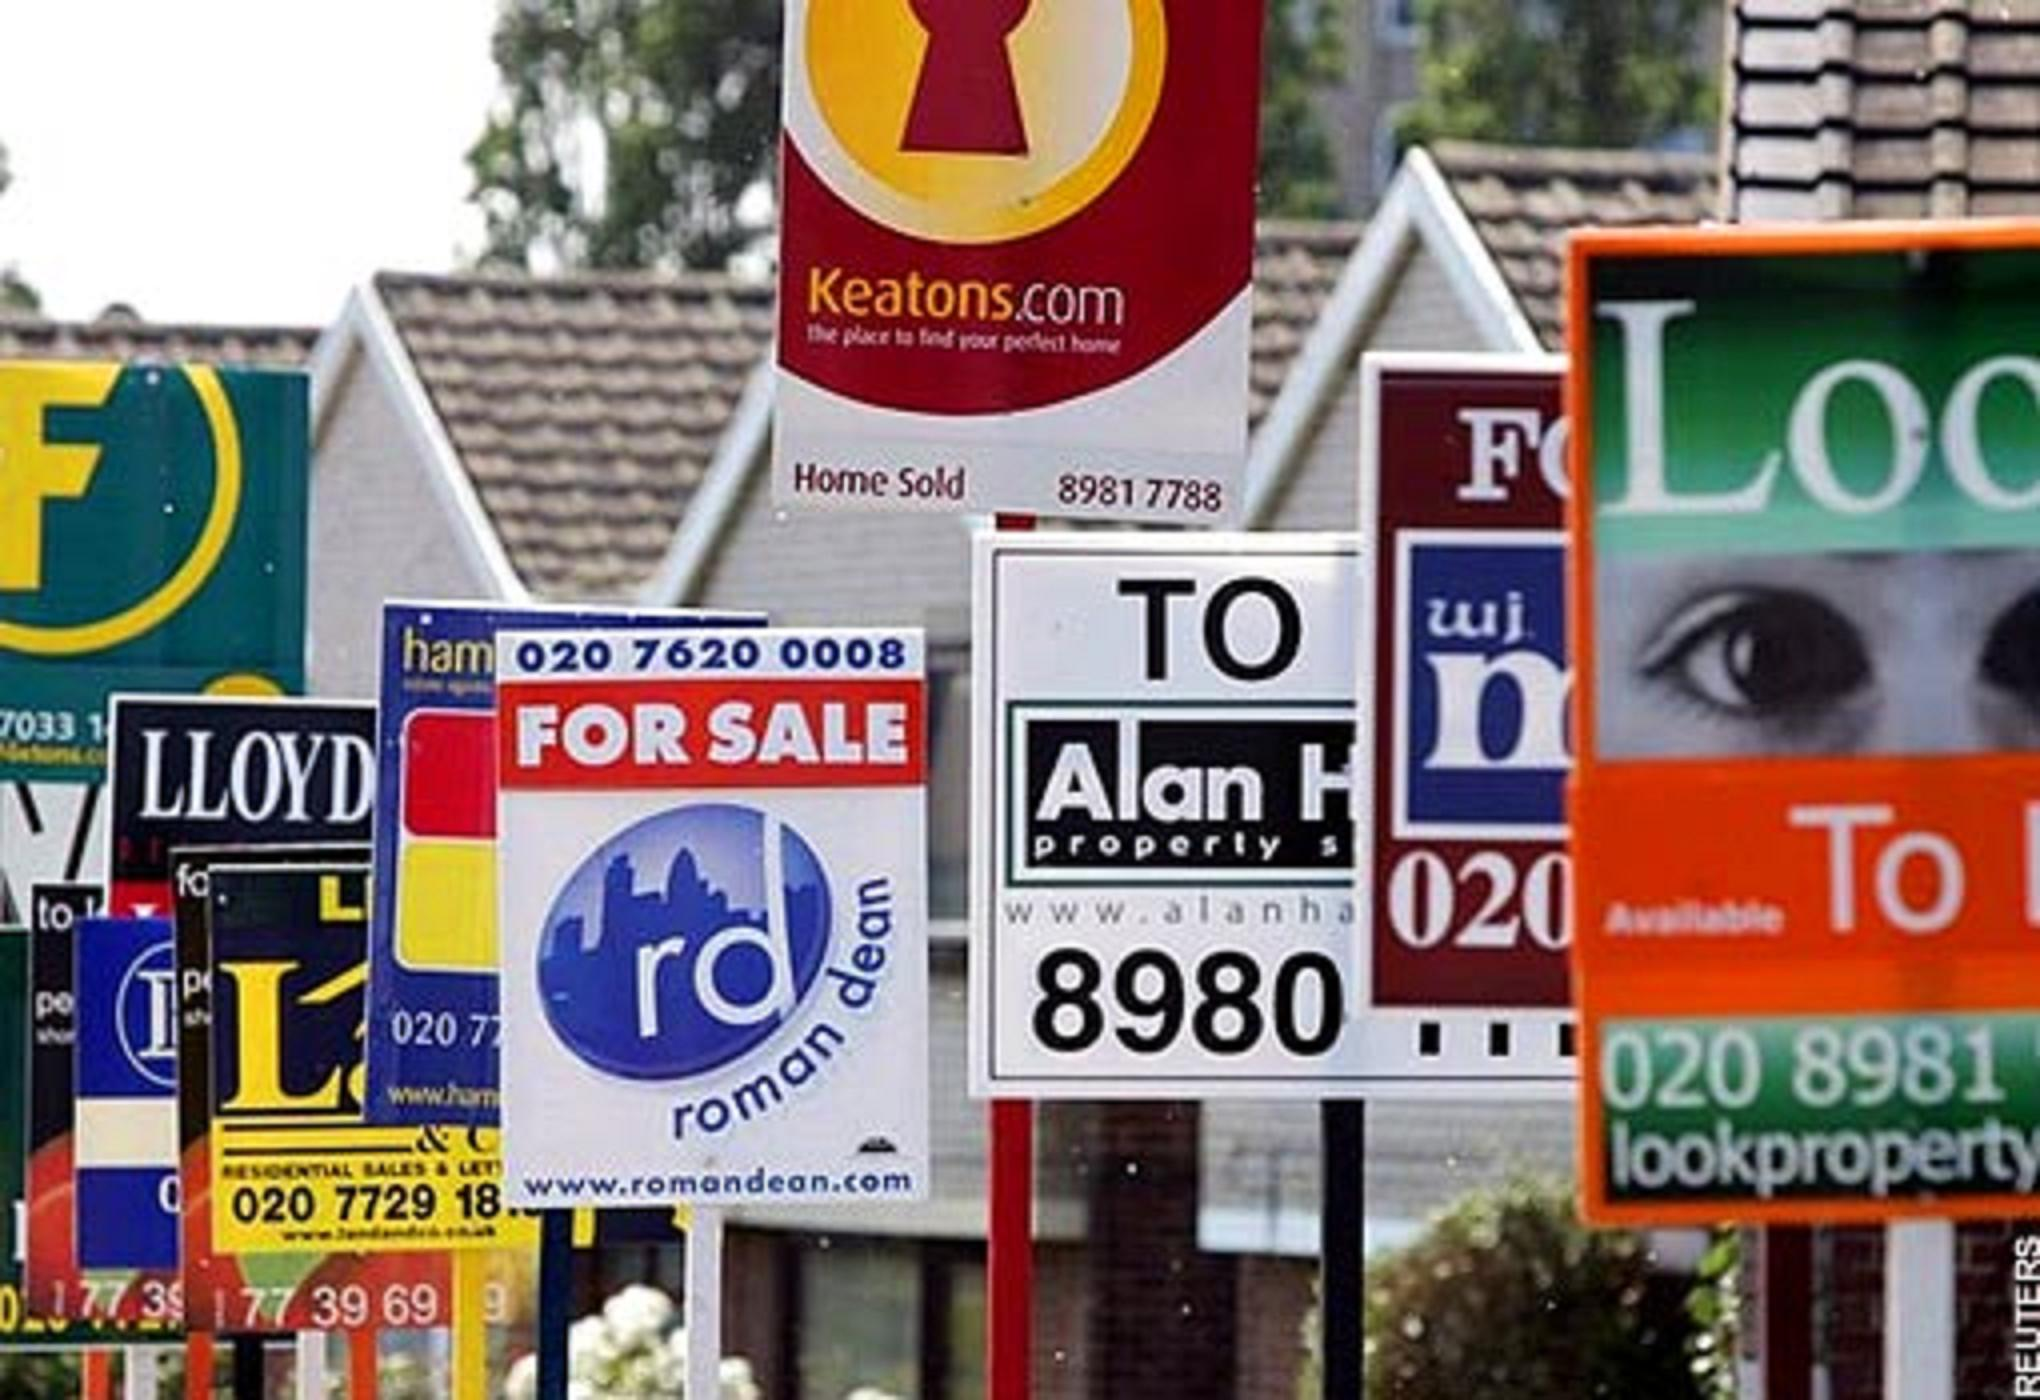 Trying to get a mortgage in Cornwall? It just got a lot more difficult